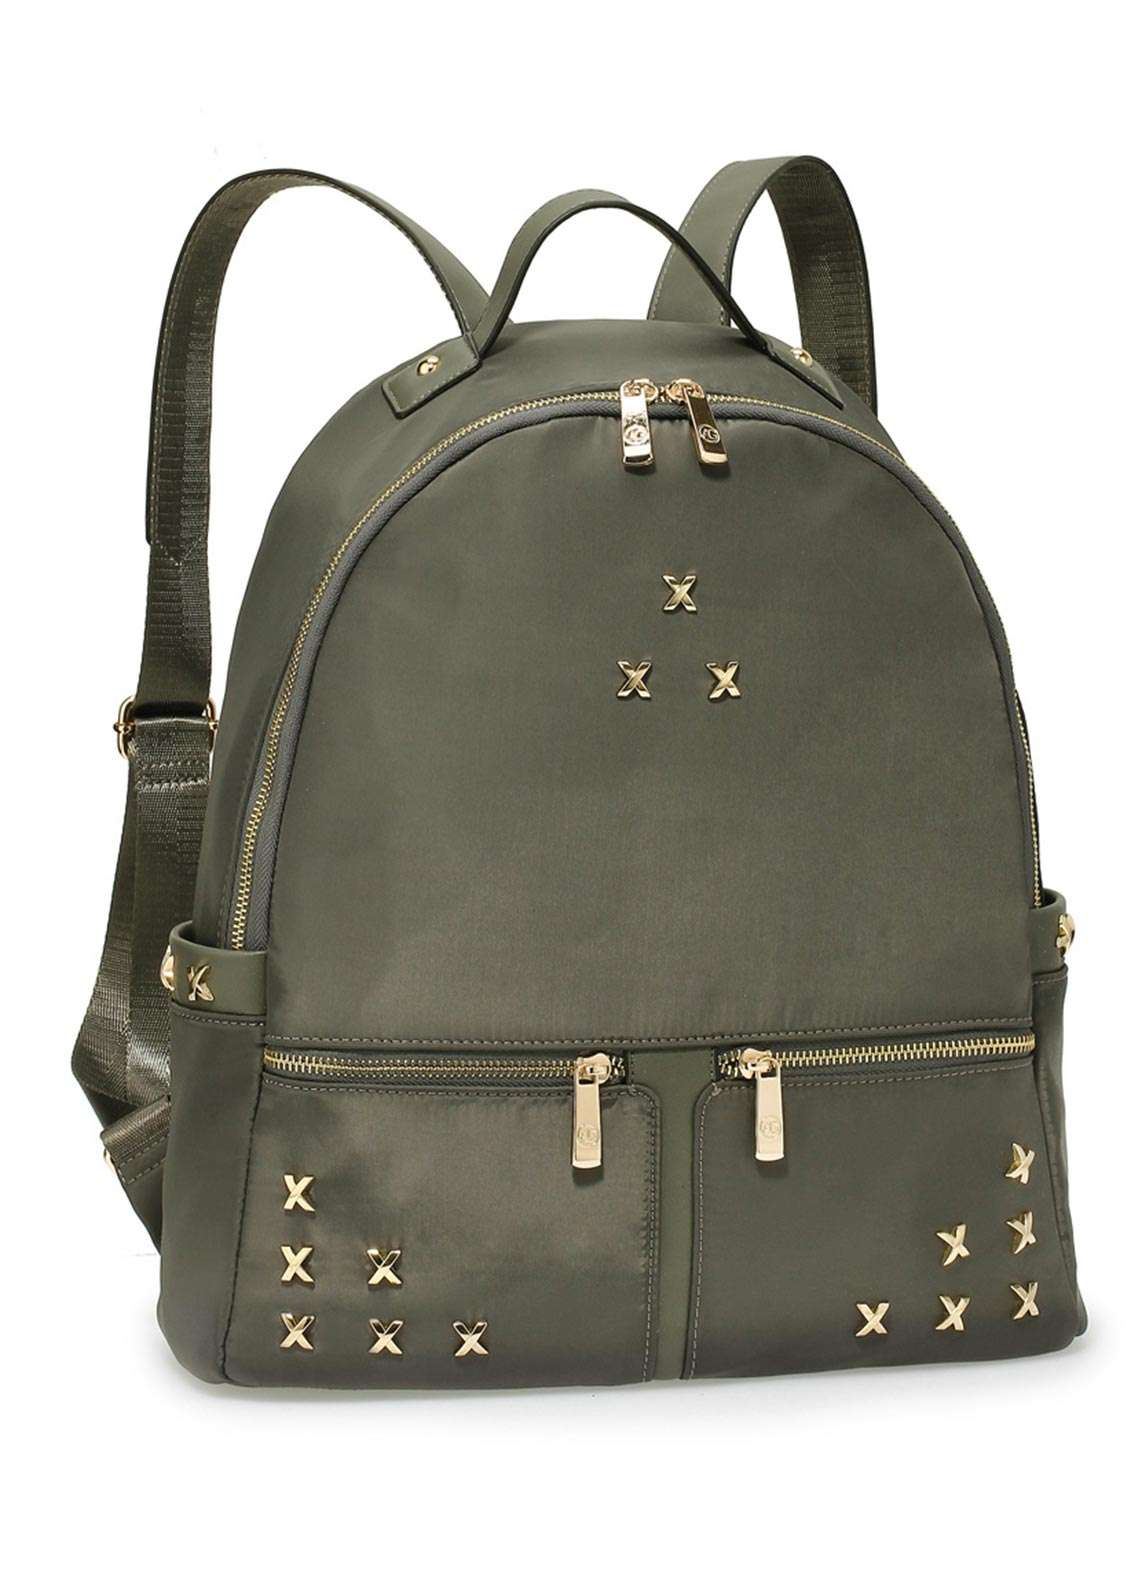 Anna Grace London Satin Backpack Bags  for Women  Grey with Shiny Texture